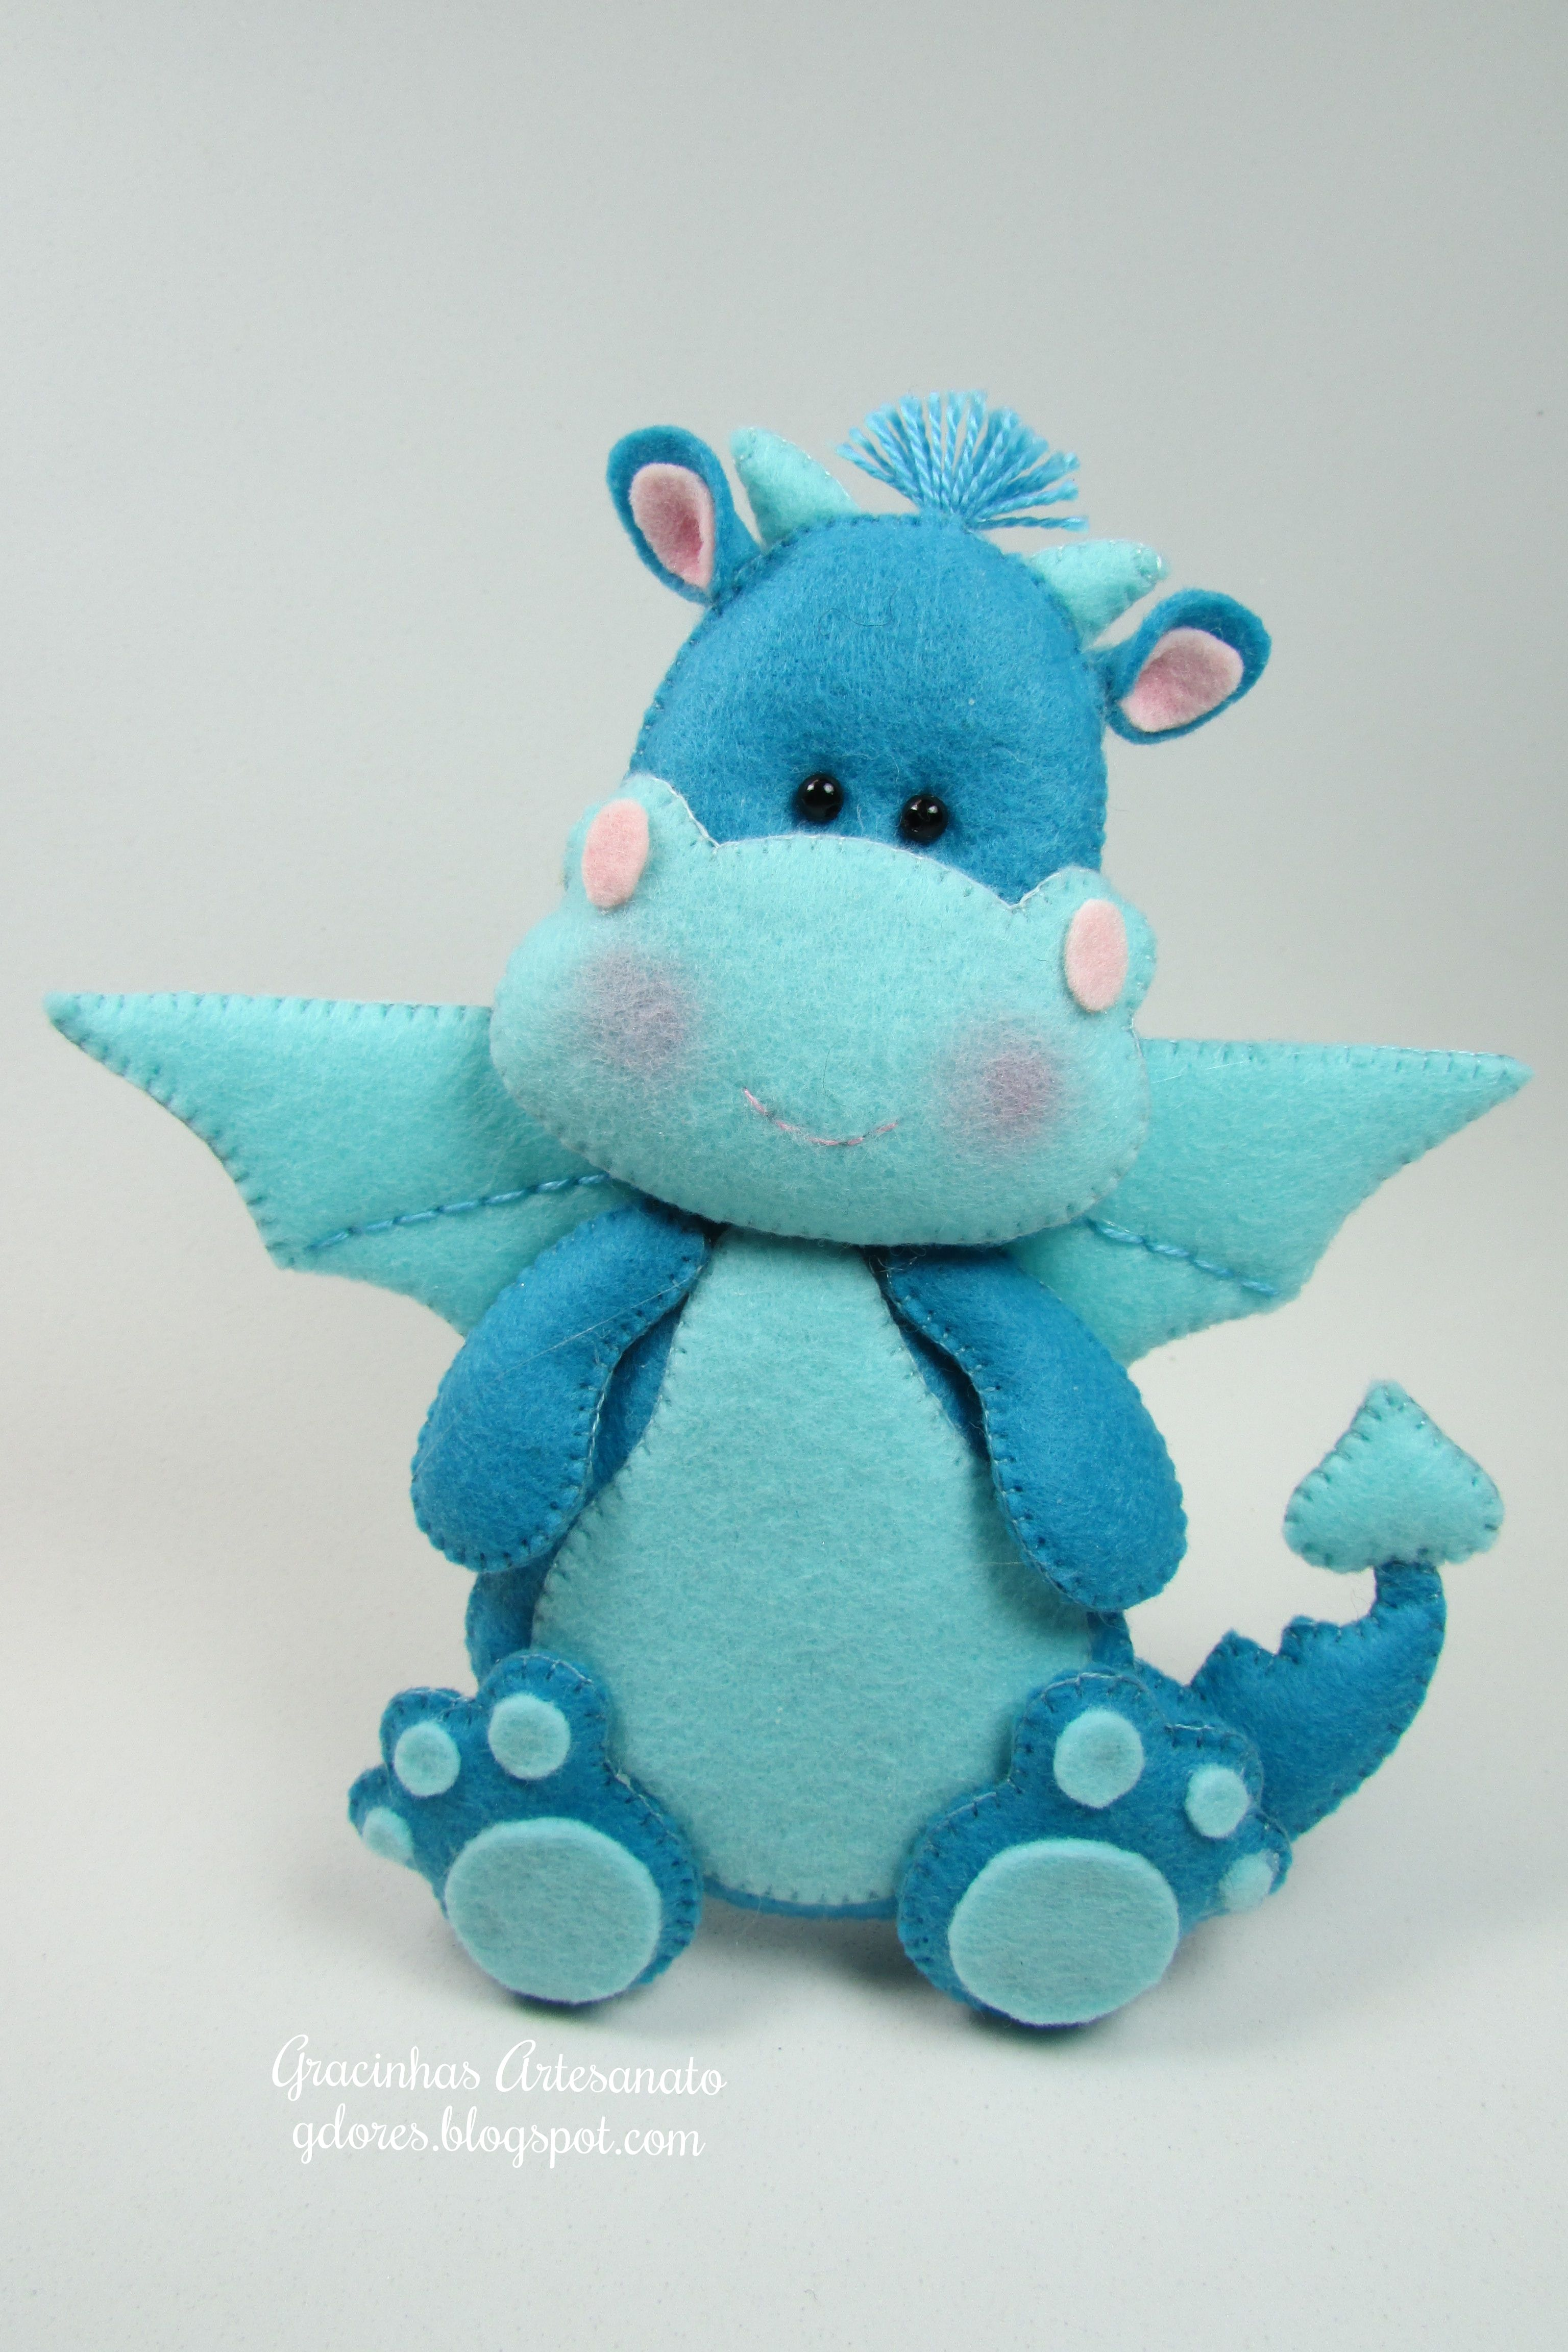 Dragon hra ky pinterest dragons felting and craft for Dragon crafts pinterest